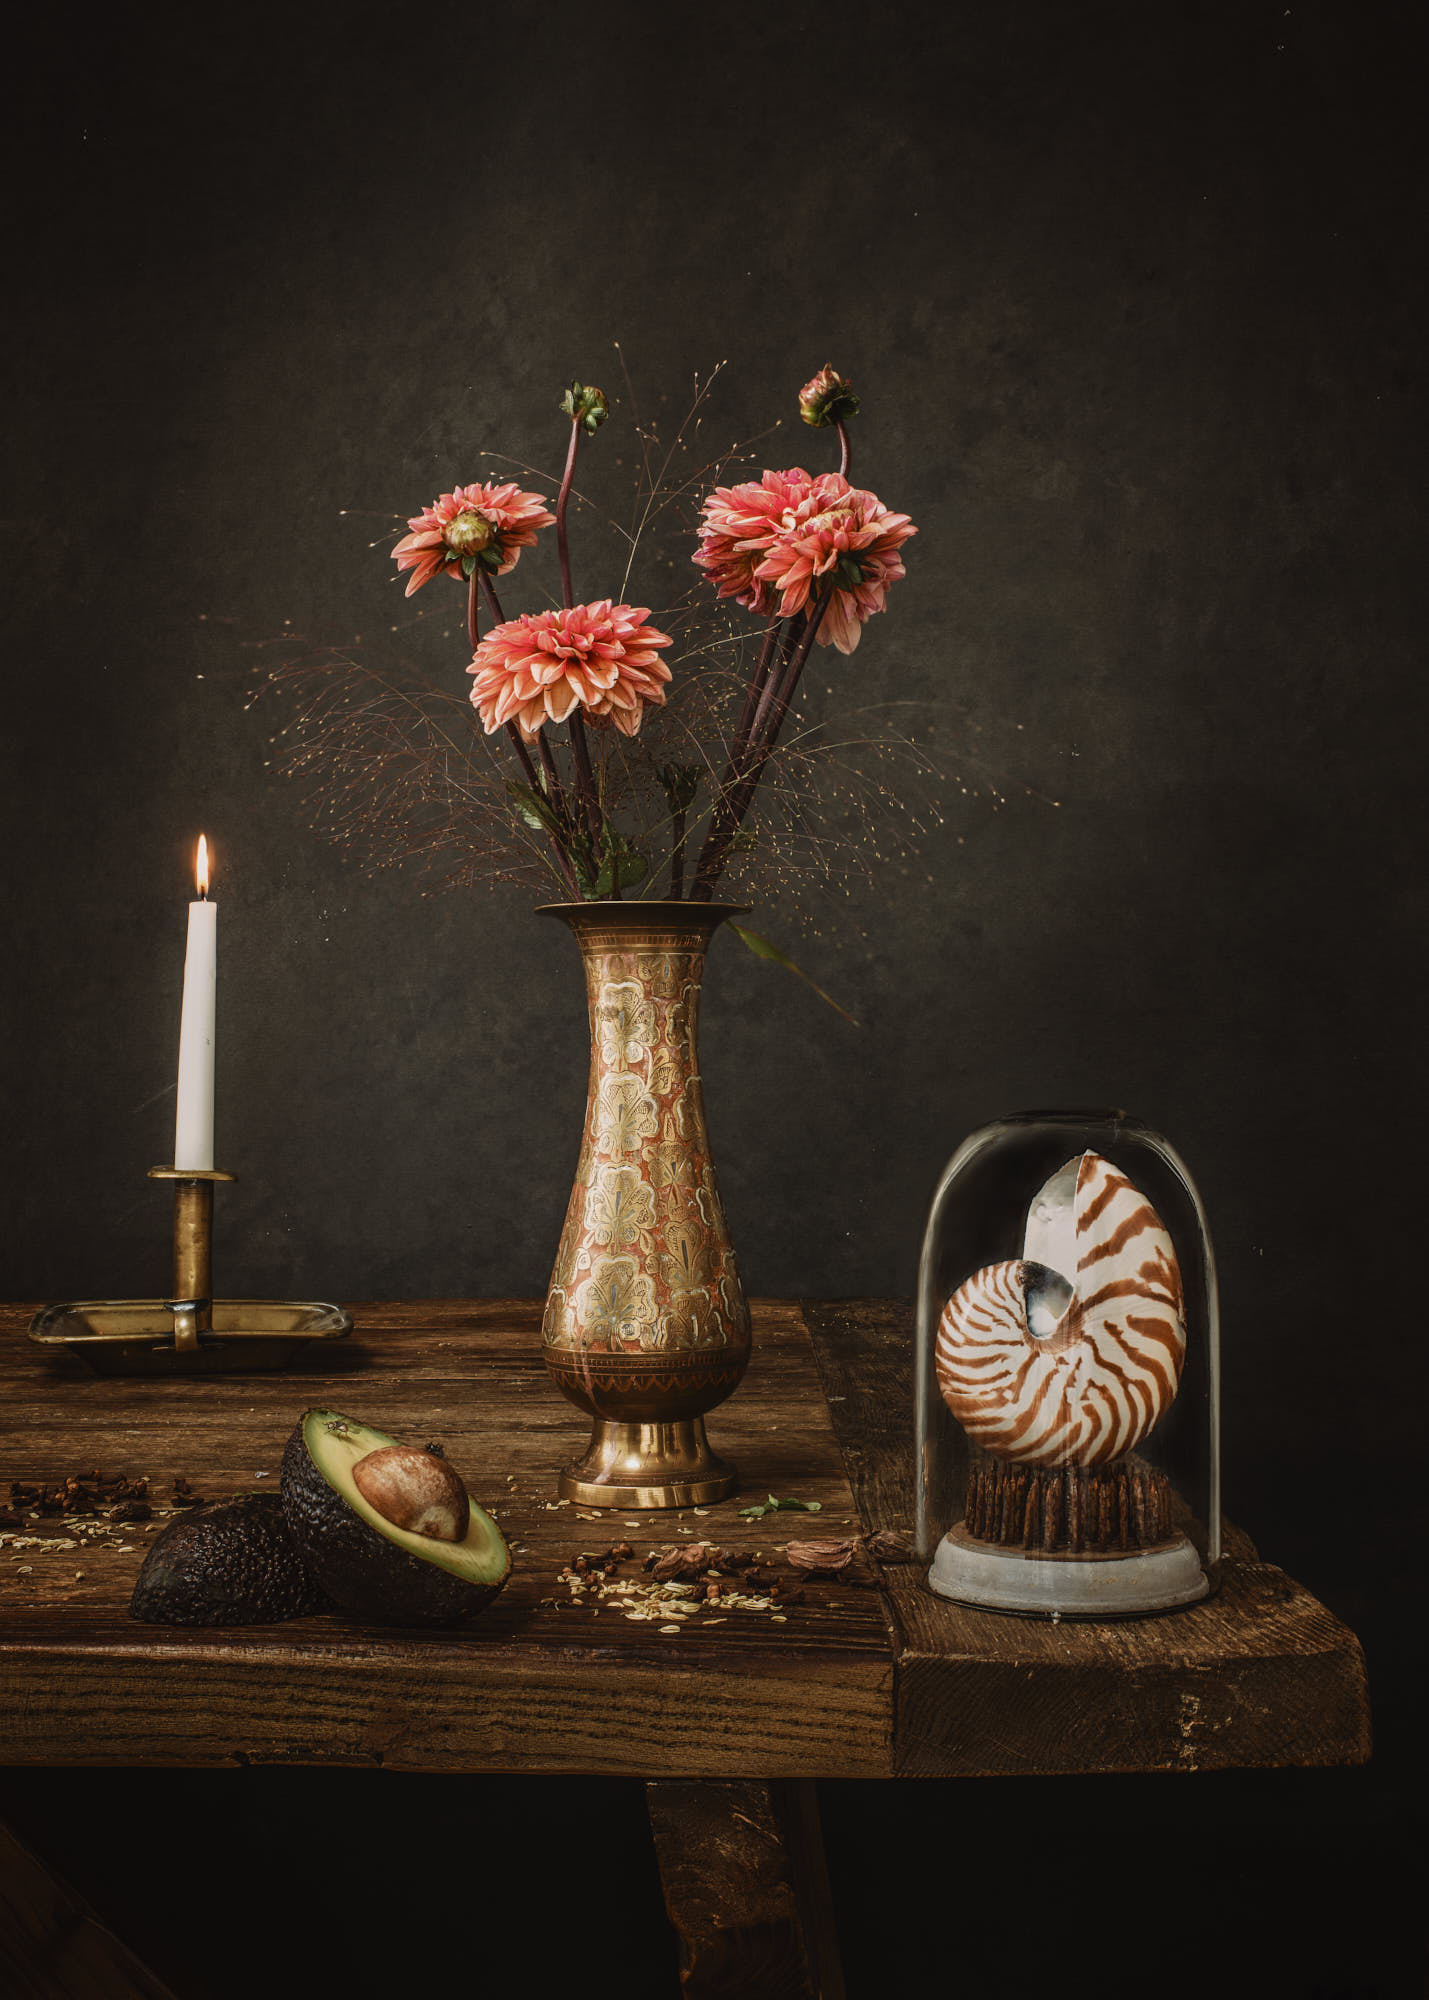 a focus stack still life fine art photography of flowers in a vase with a seashell and avocado in the style of a dutch masters painting by yorkshire based photographer matthew lloyd